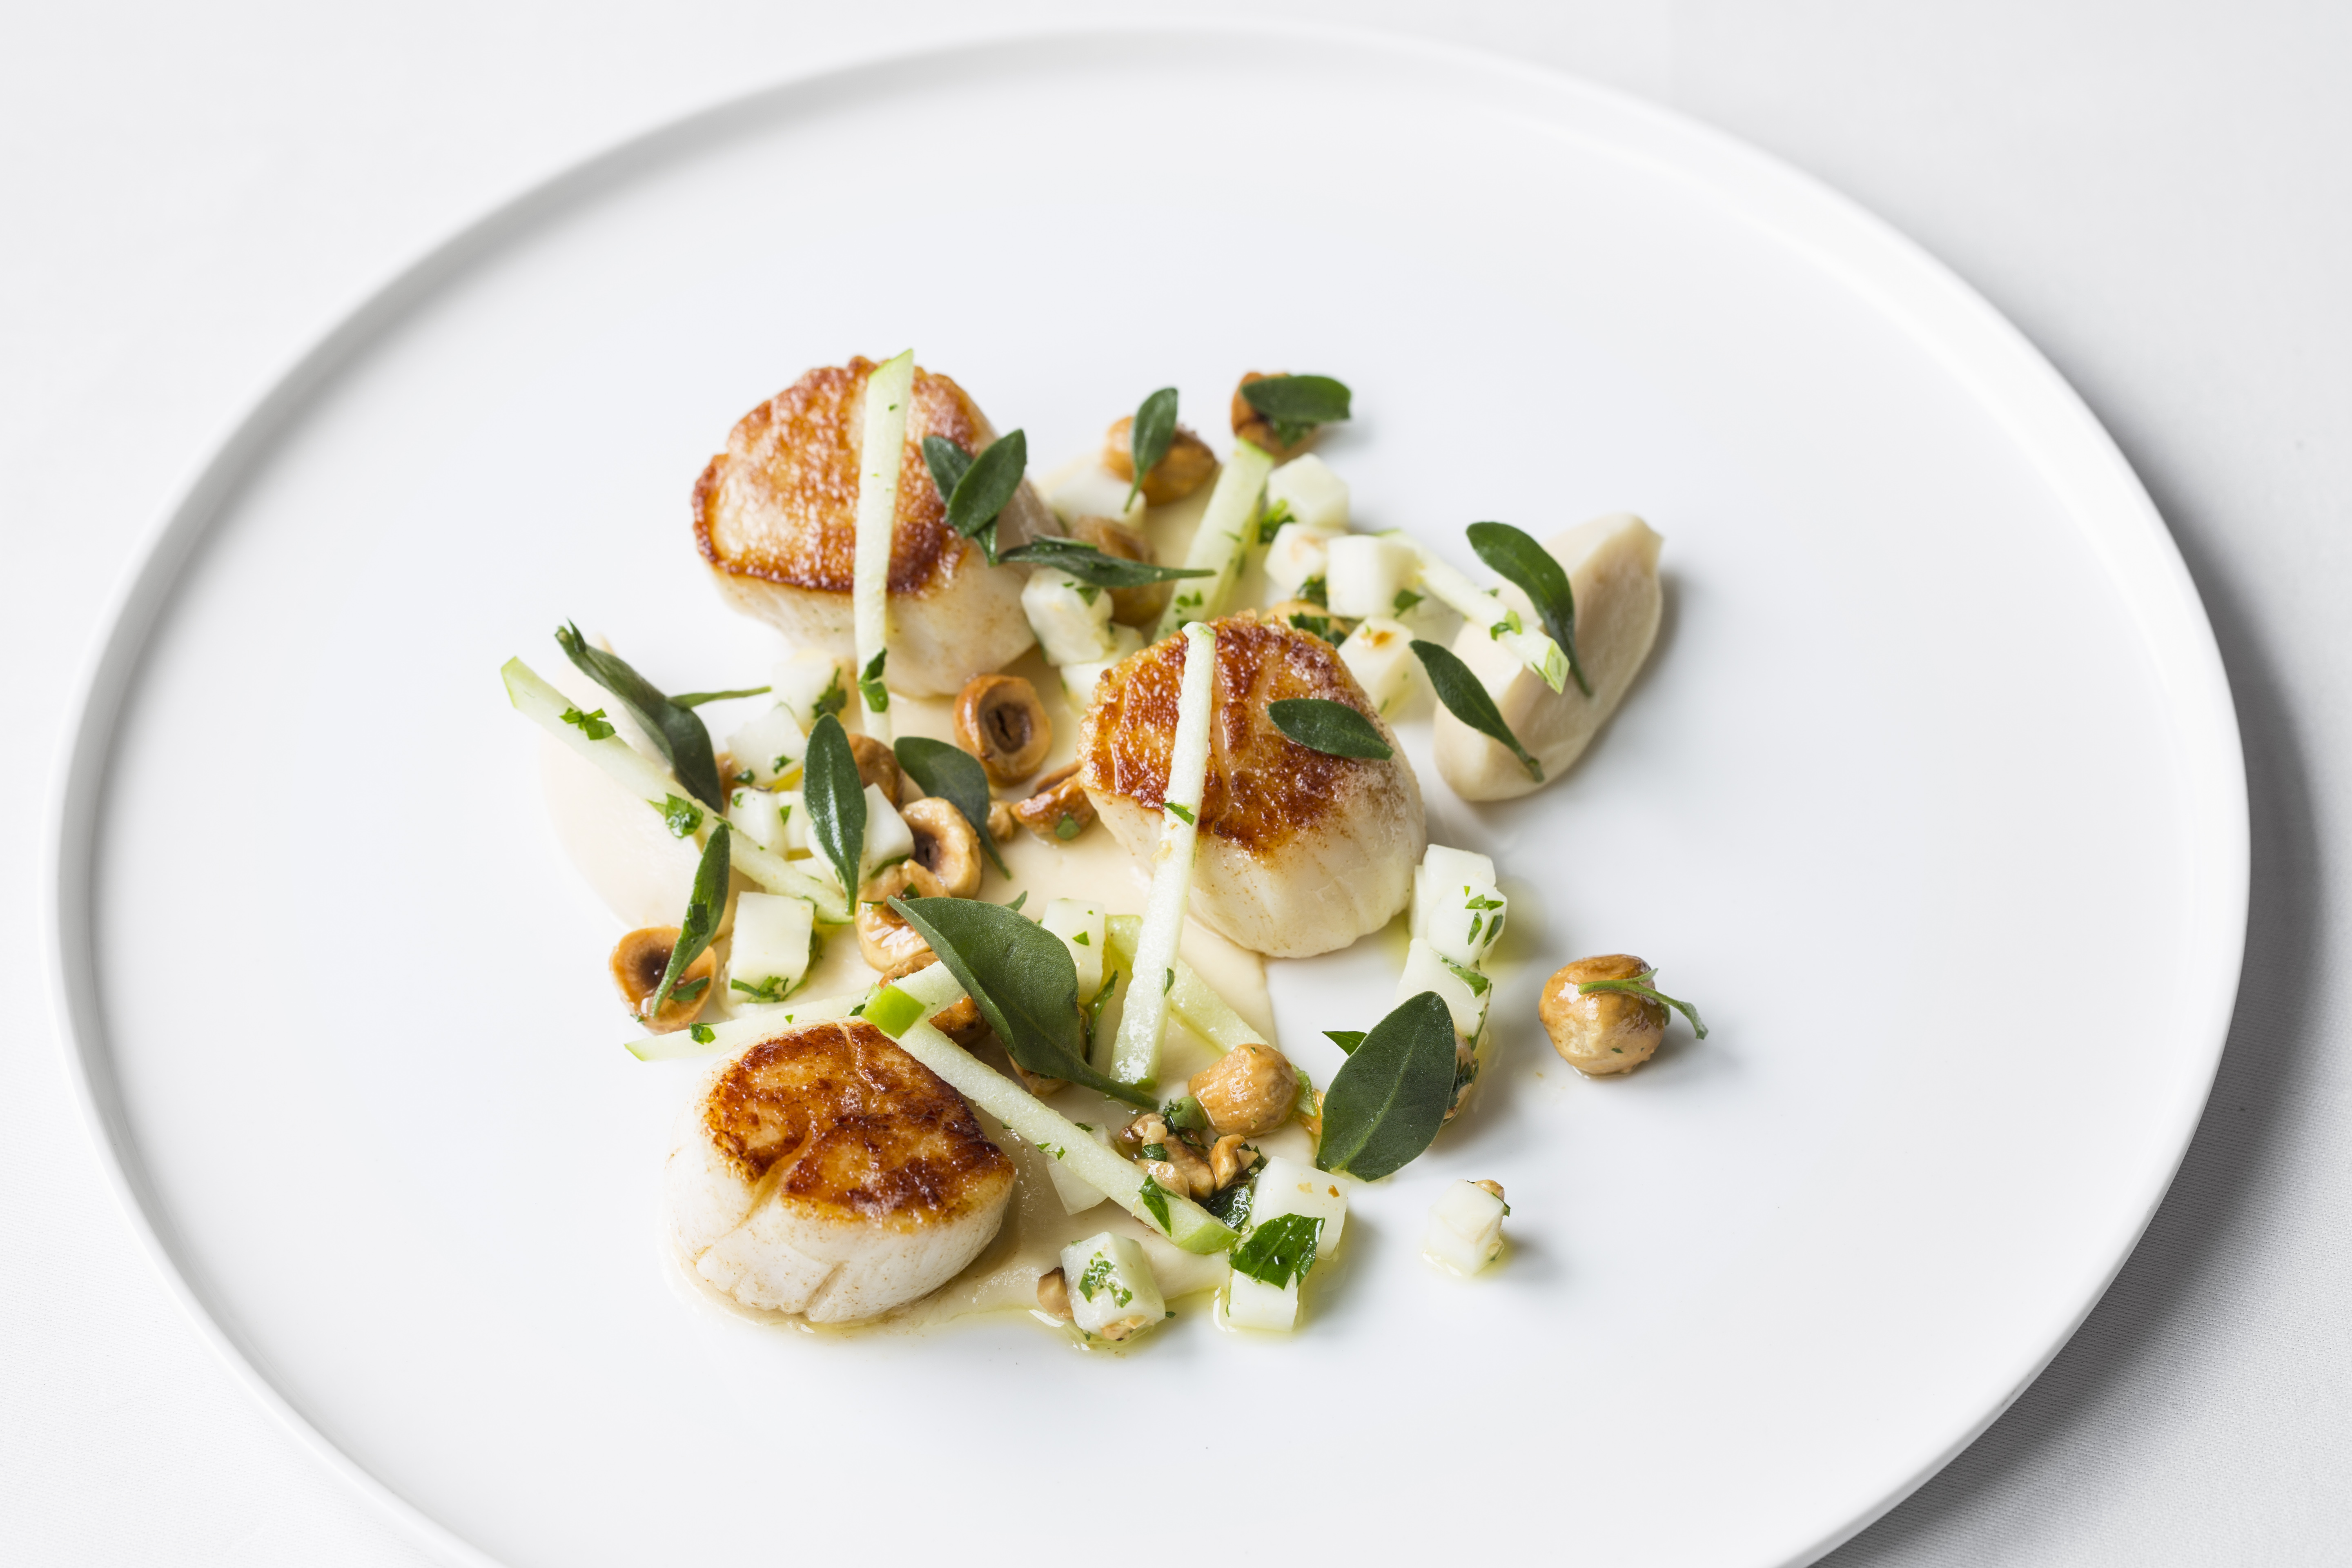 Scallop starter recipes great british chefs fandeluxe Choice Image